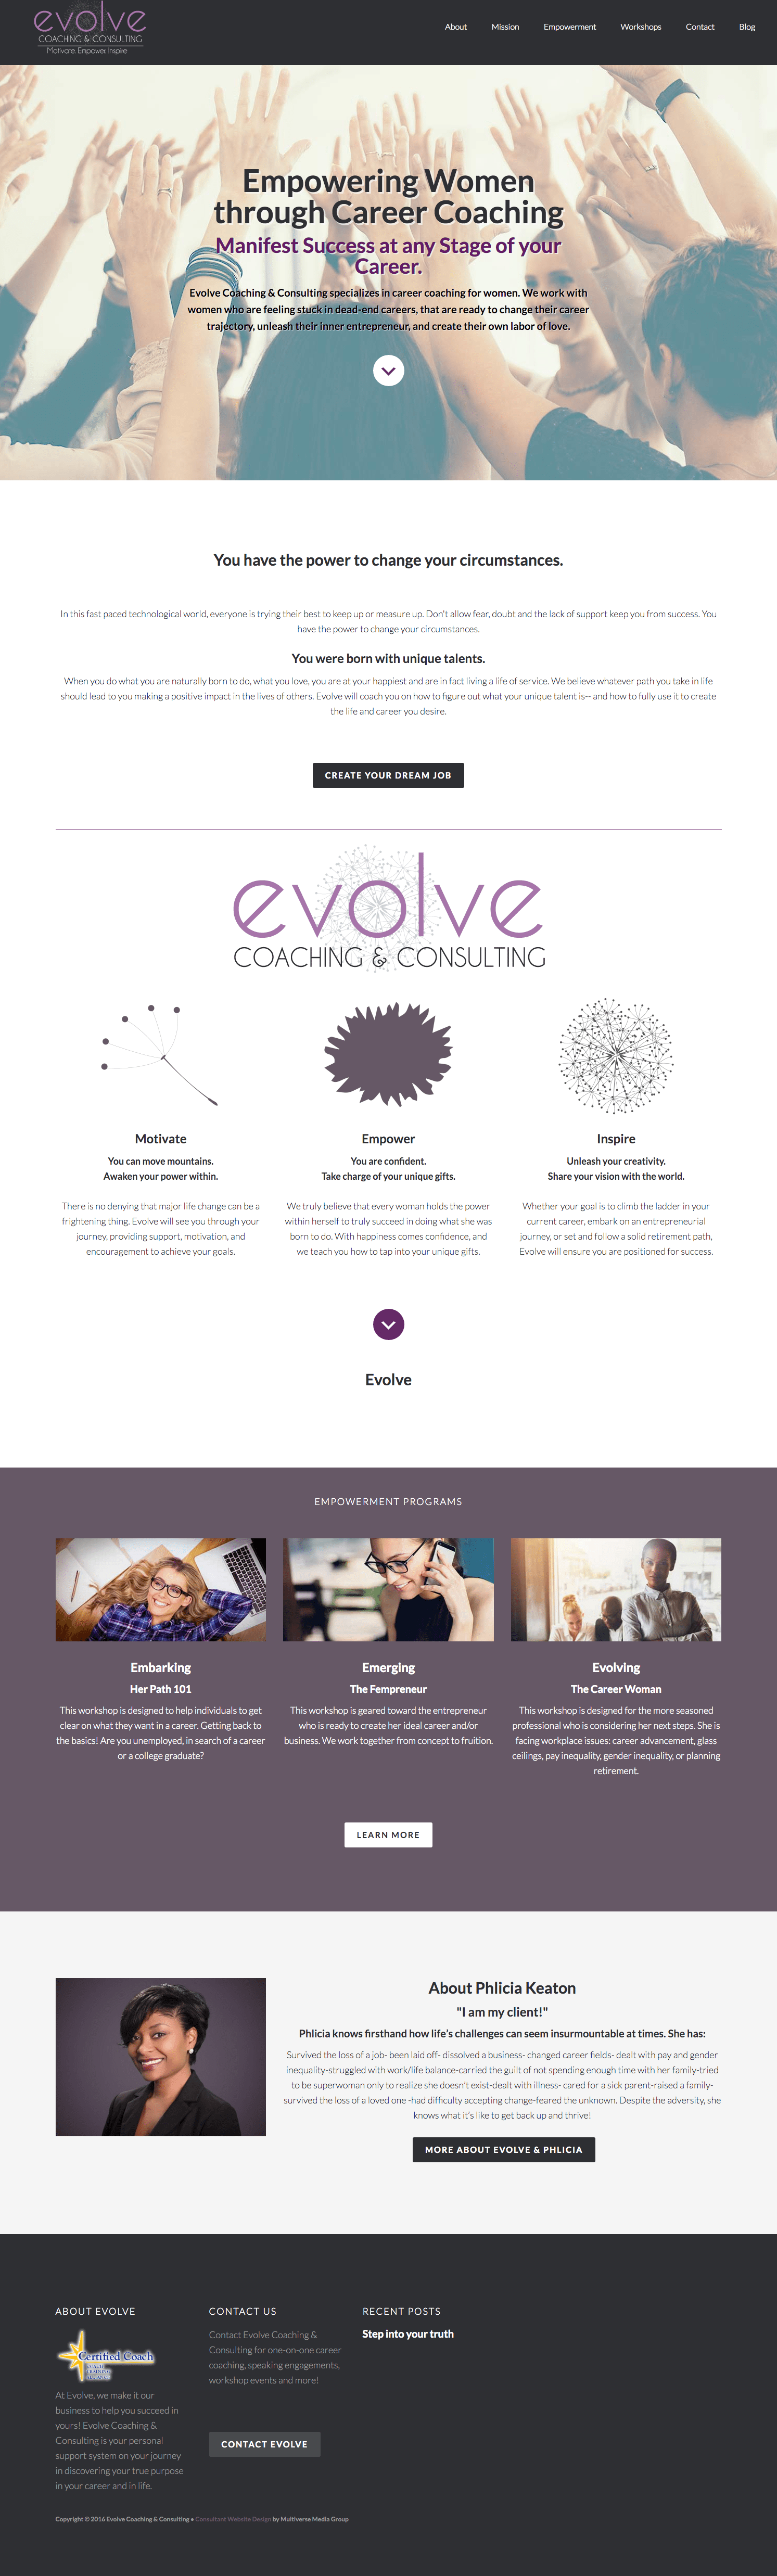 Evolve Coaching & Consulting